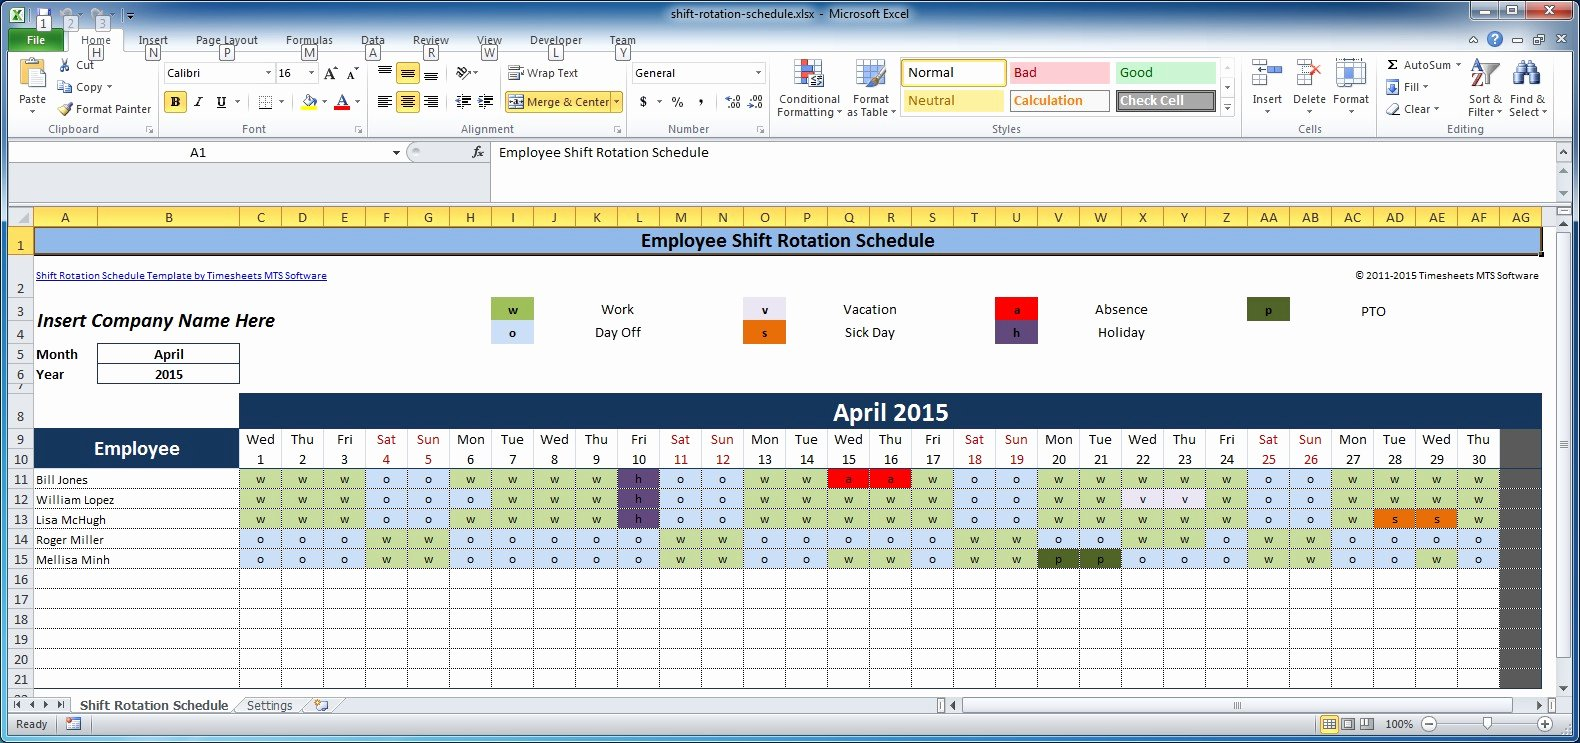 Employee Shift Schedule Template Excel Fresh Free Employee and Shift Schedule Templates